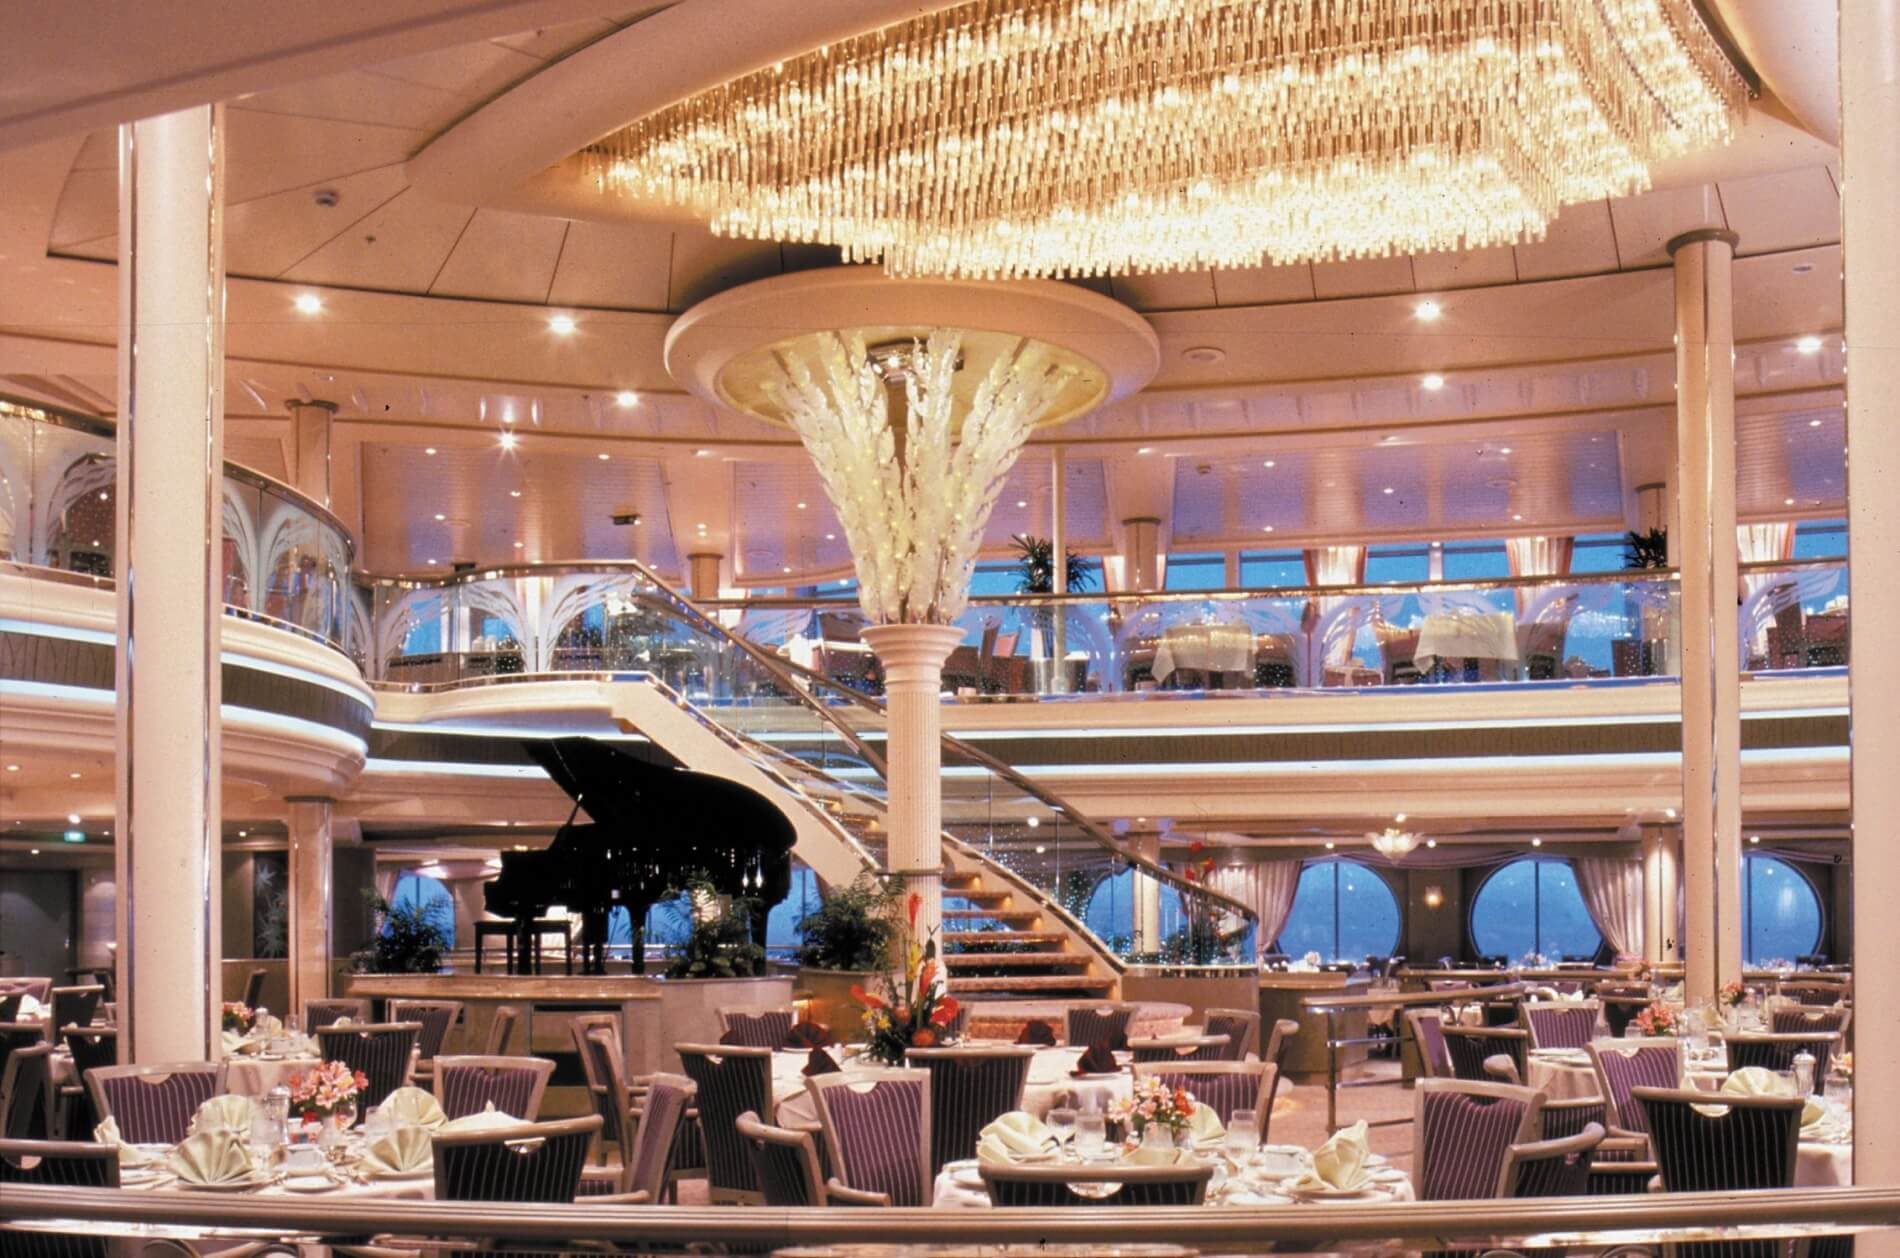 Круизный лайнер Rhapsody of the Seas - Основной ресторан (Dining Room)